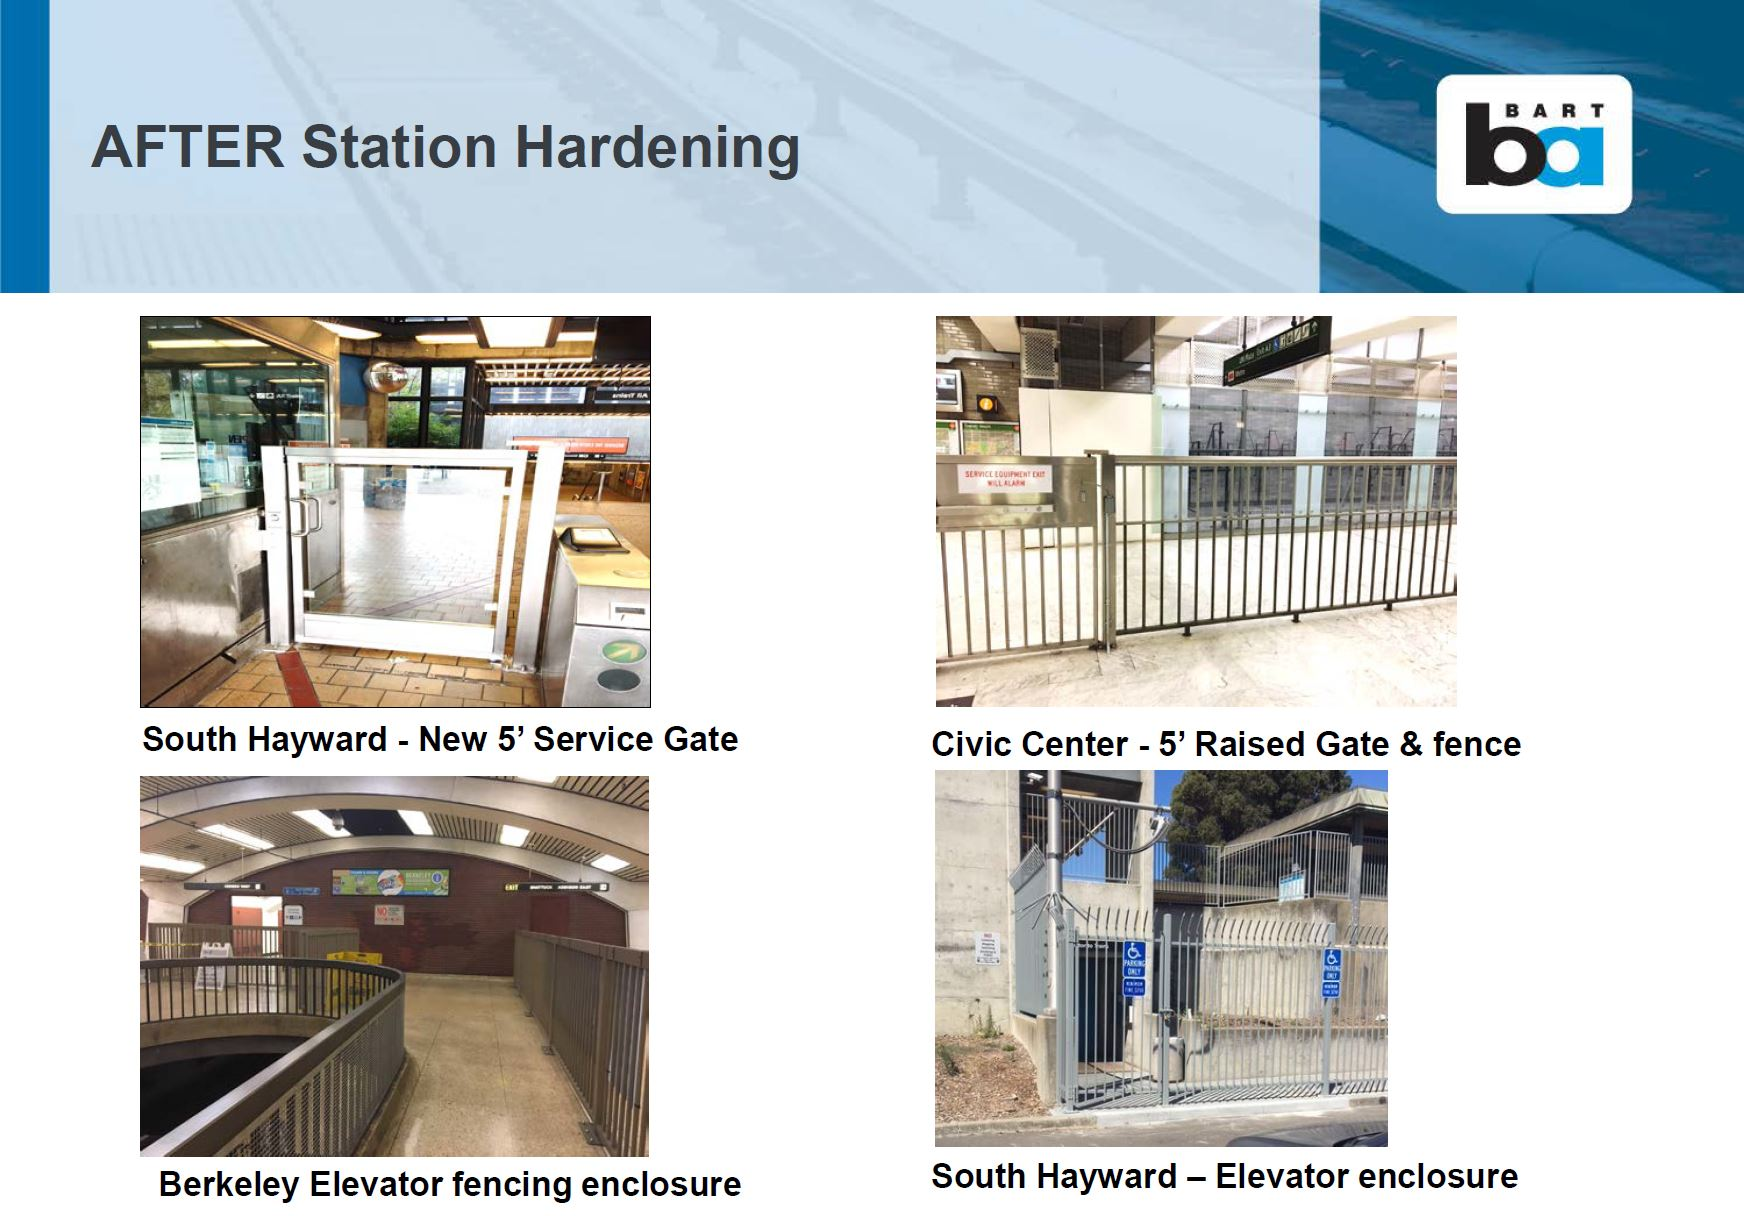 Pictures after station hardening